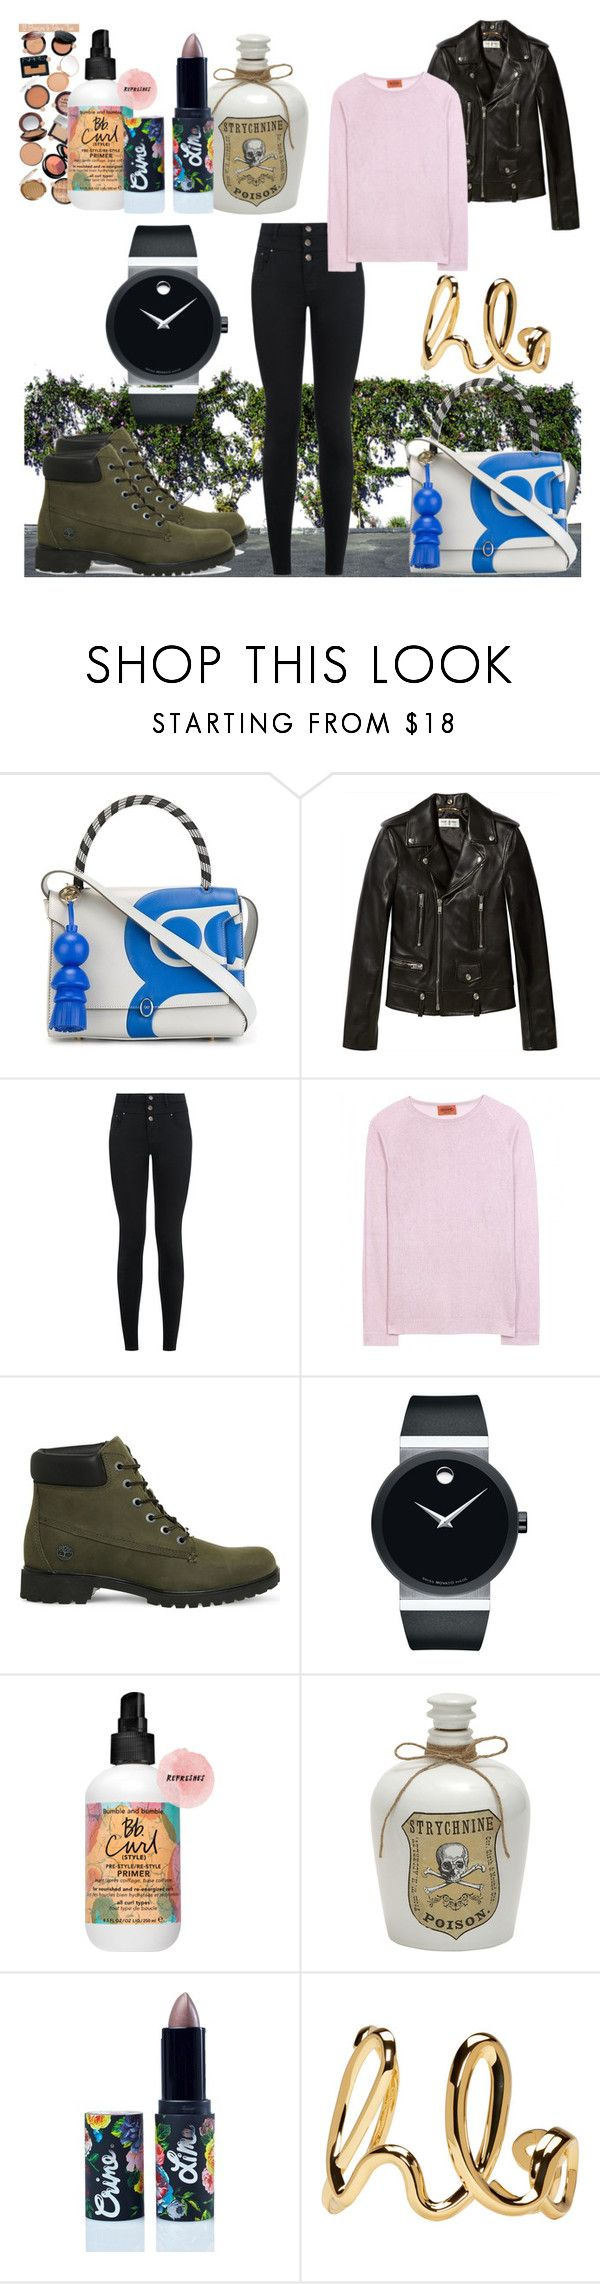 """I want you to swear that..."" by black-wings ❤ liked on Polyvore featuring Anya Hindmarch, Yves Saint Laurent, New Look, Missoni, Timberland, Movado, Lime Crime and Chloé"